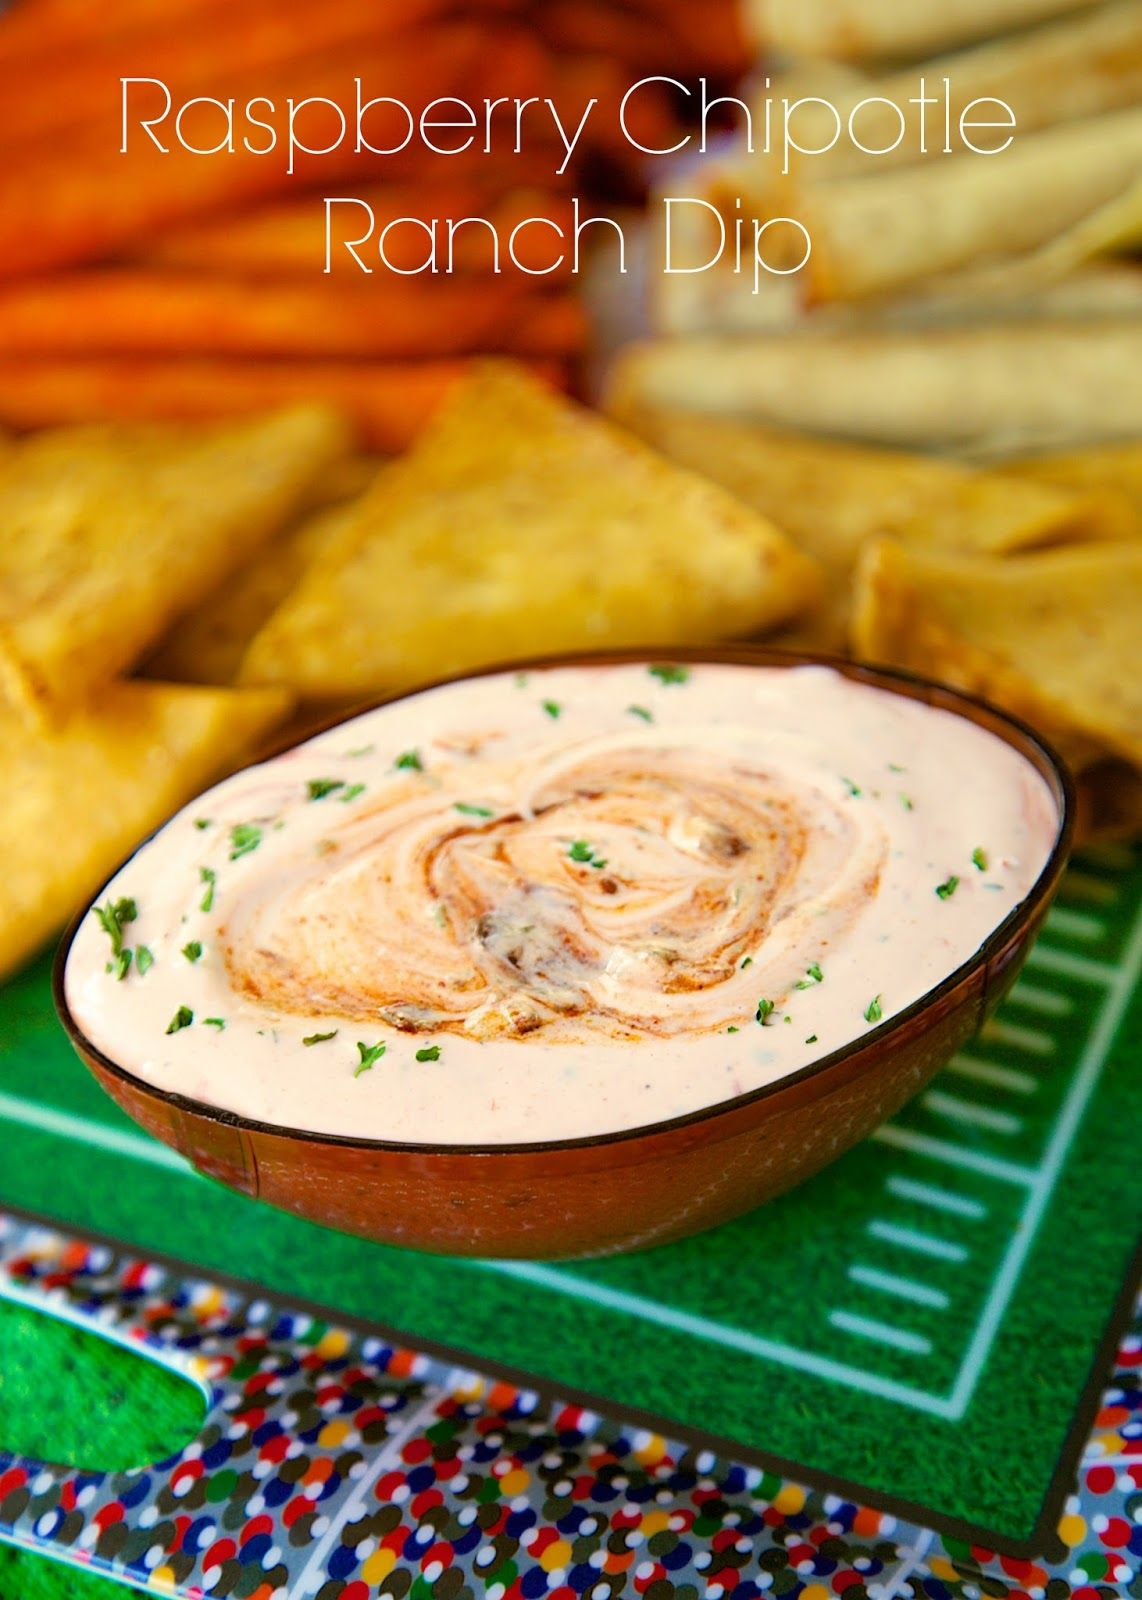 Raspberry Chipotle Ranch Dip - super addictive! Great as a dip, but also great as a salad dressing!